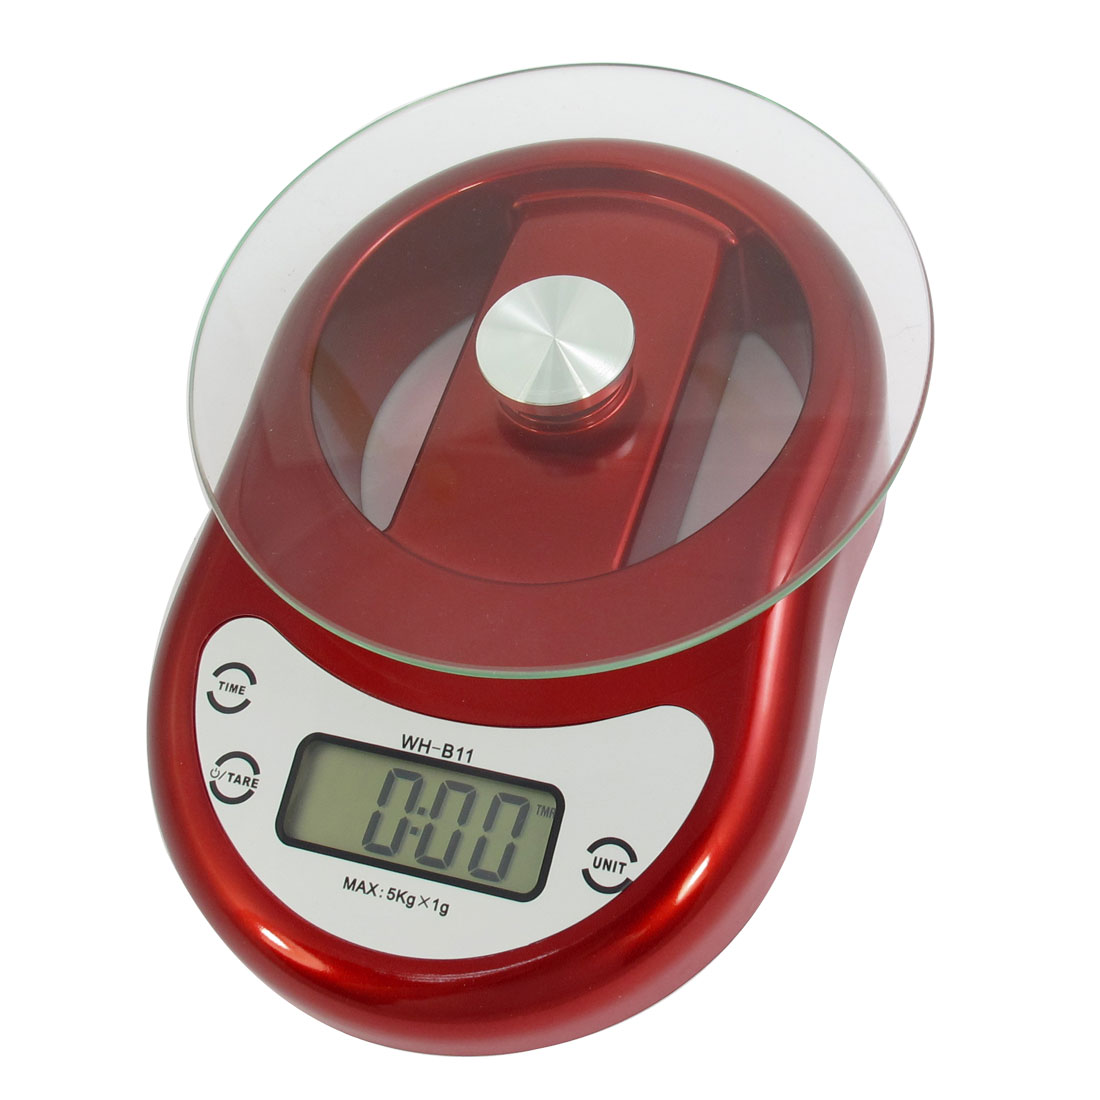 5Kg x 1g Kitchen Digital Electronic Weight Scale Kg oz lb g Red